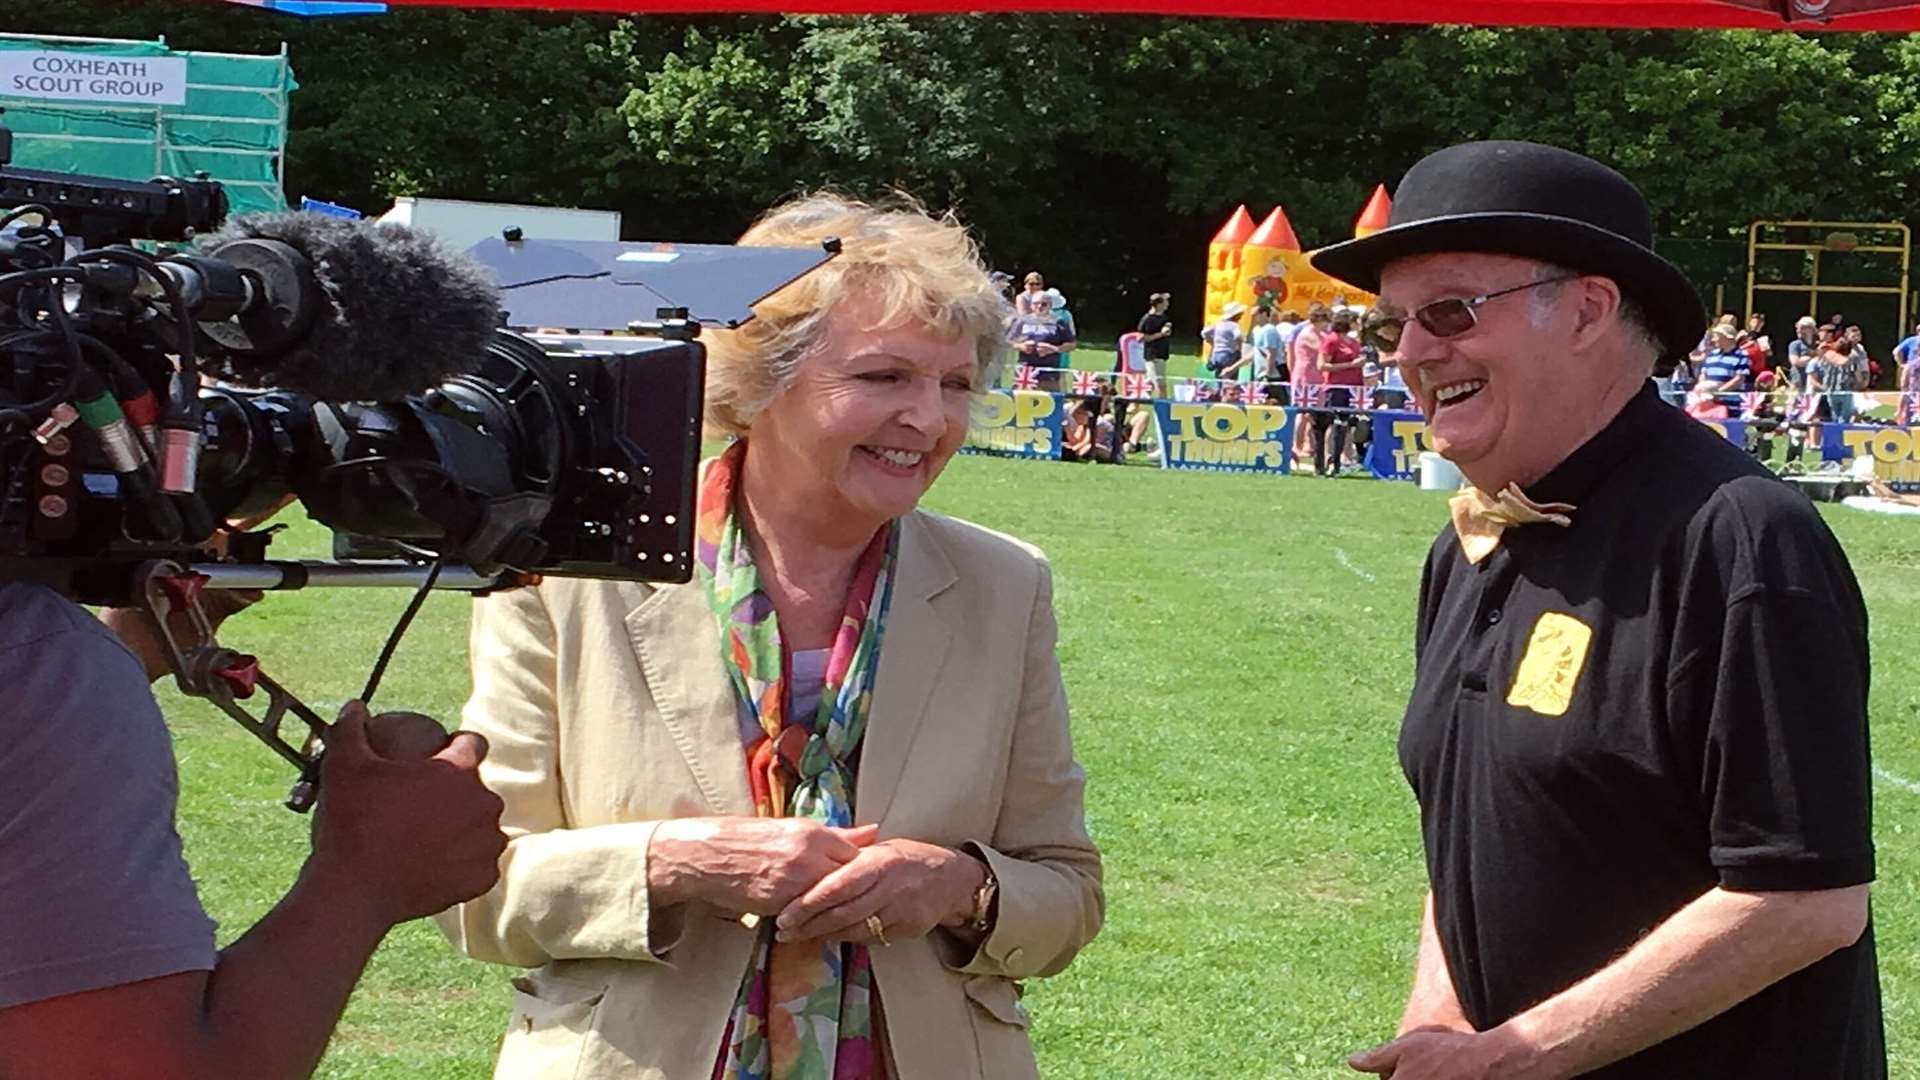 Penelope Keith filming in Coxheath with Custard Pie chairman Mike Fitzgerald